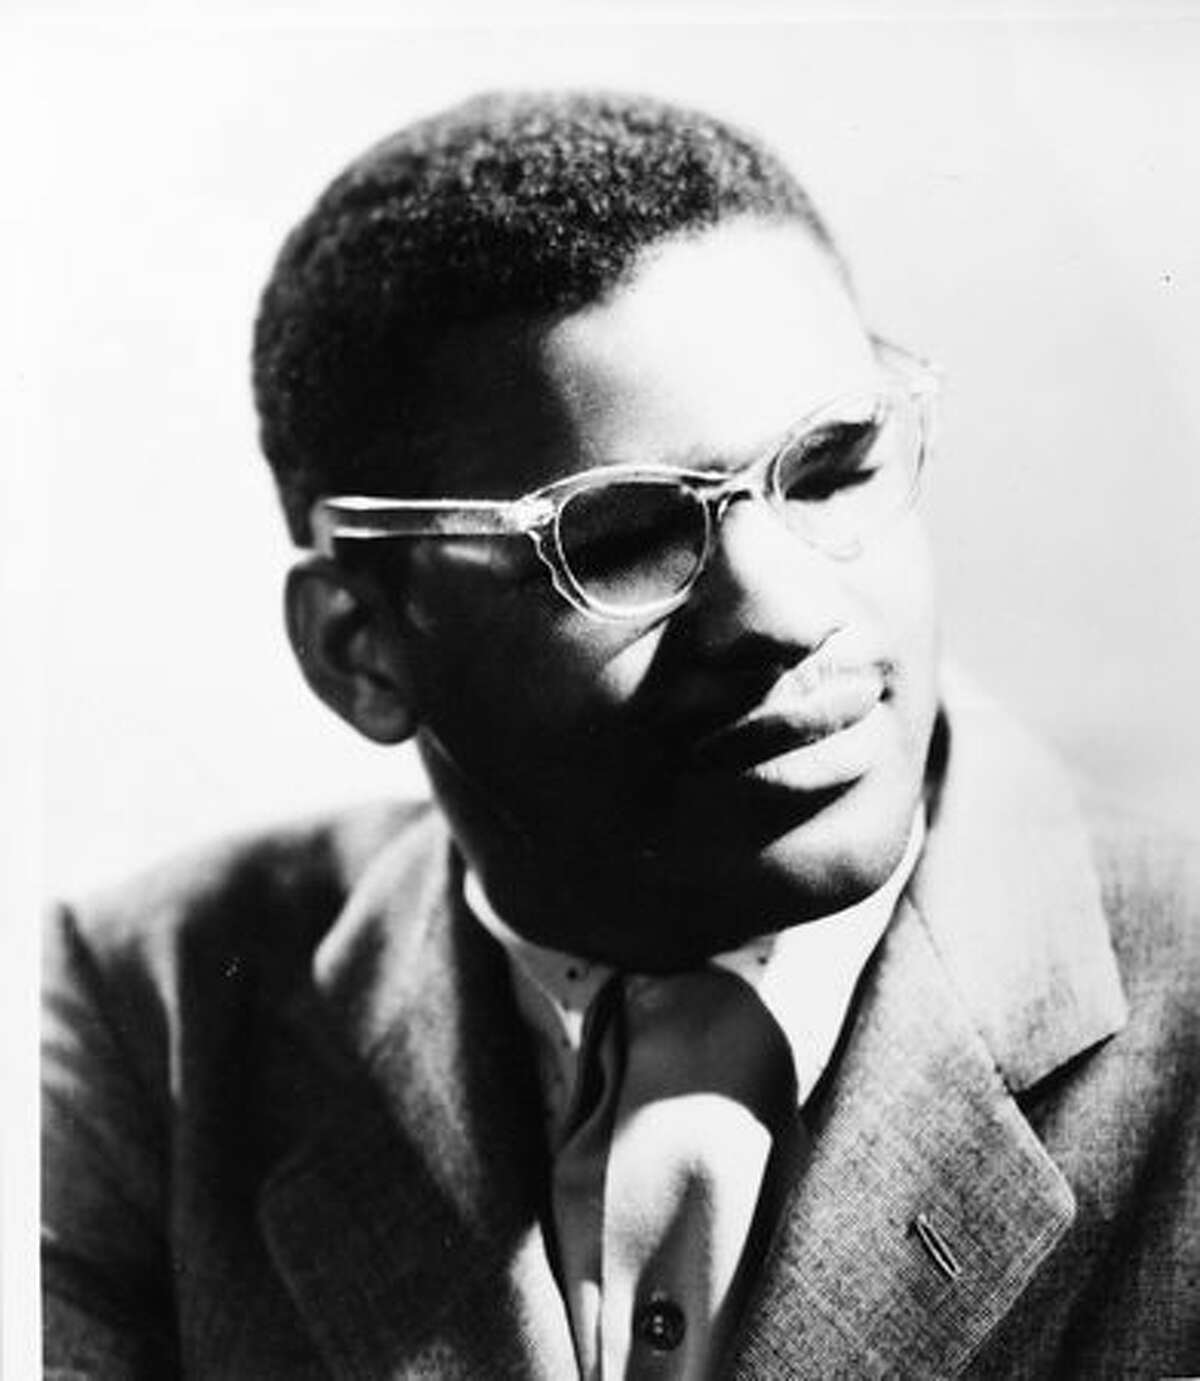 A 1949 portrait of Ray Charles, part of the P-I file courtesy of Experience Music Project. Charles recorded his first record in Seattle.